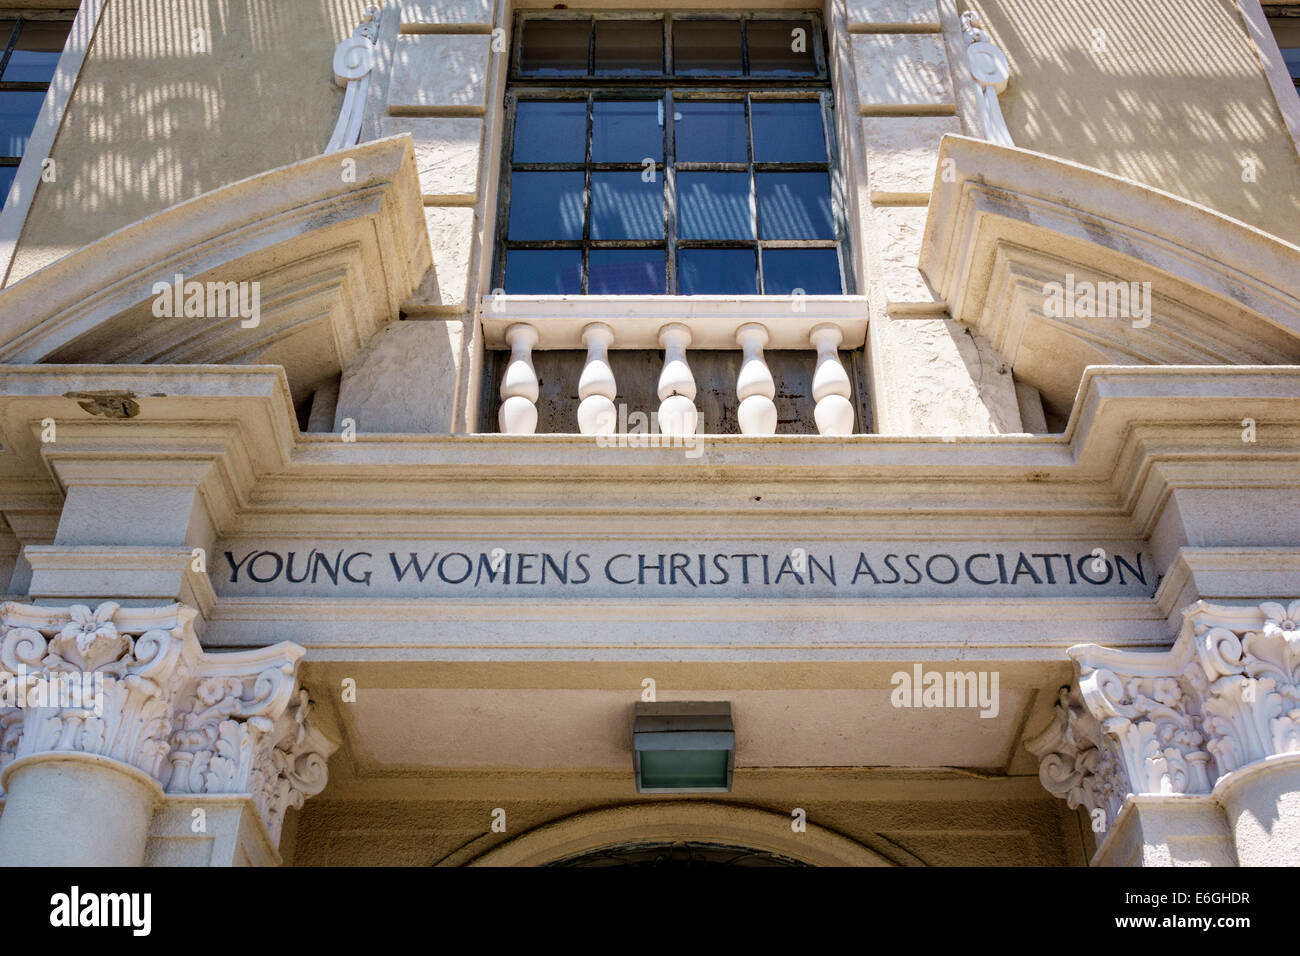 Hawaii Oahu Hawaiian Honolulu Young Women's Christian Association YWCA front entrance - Stock Image